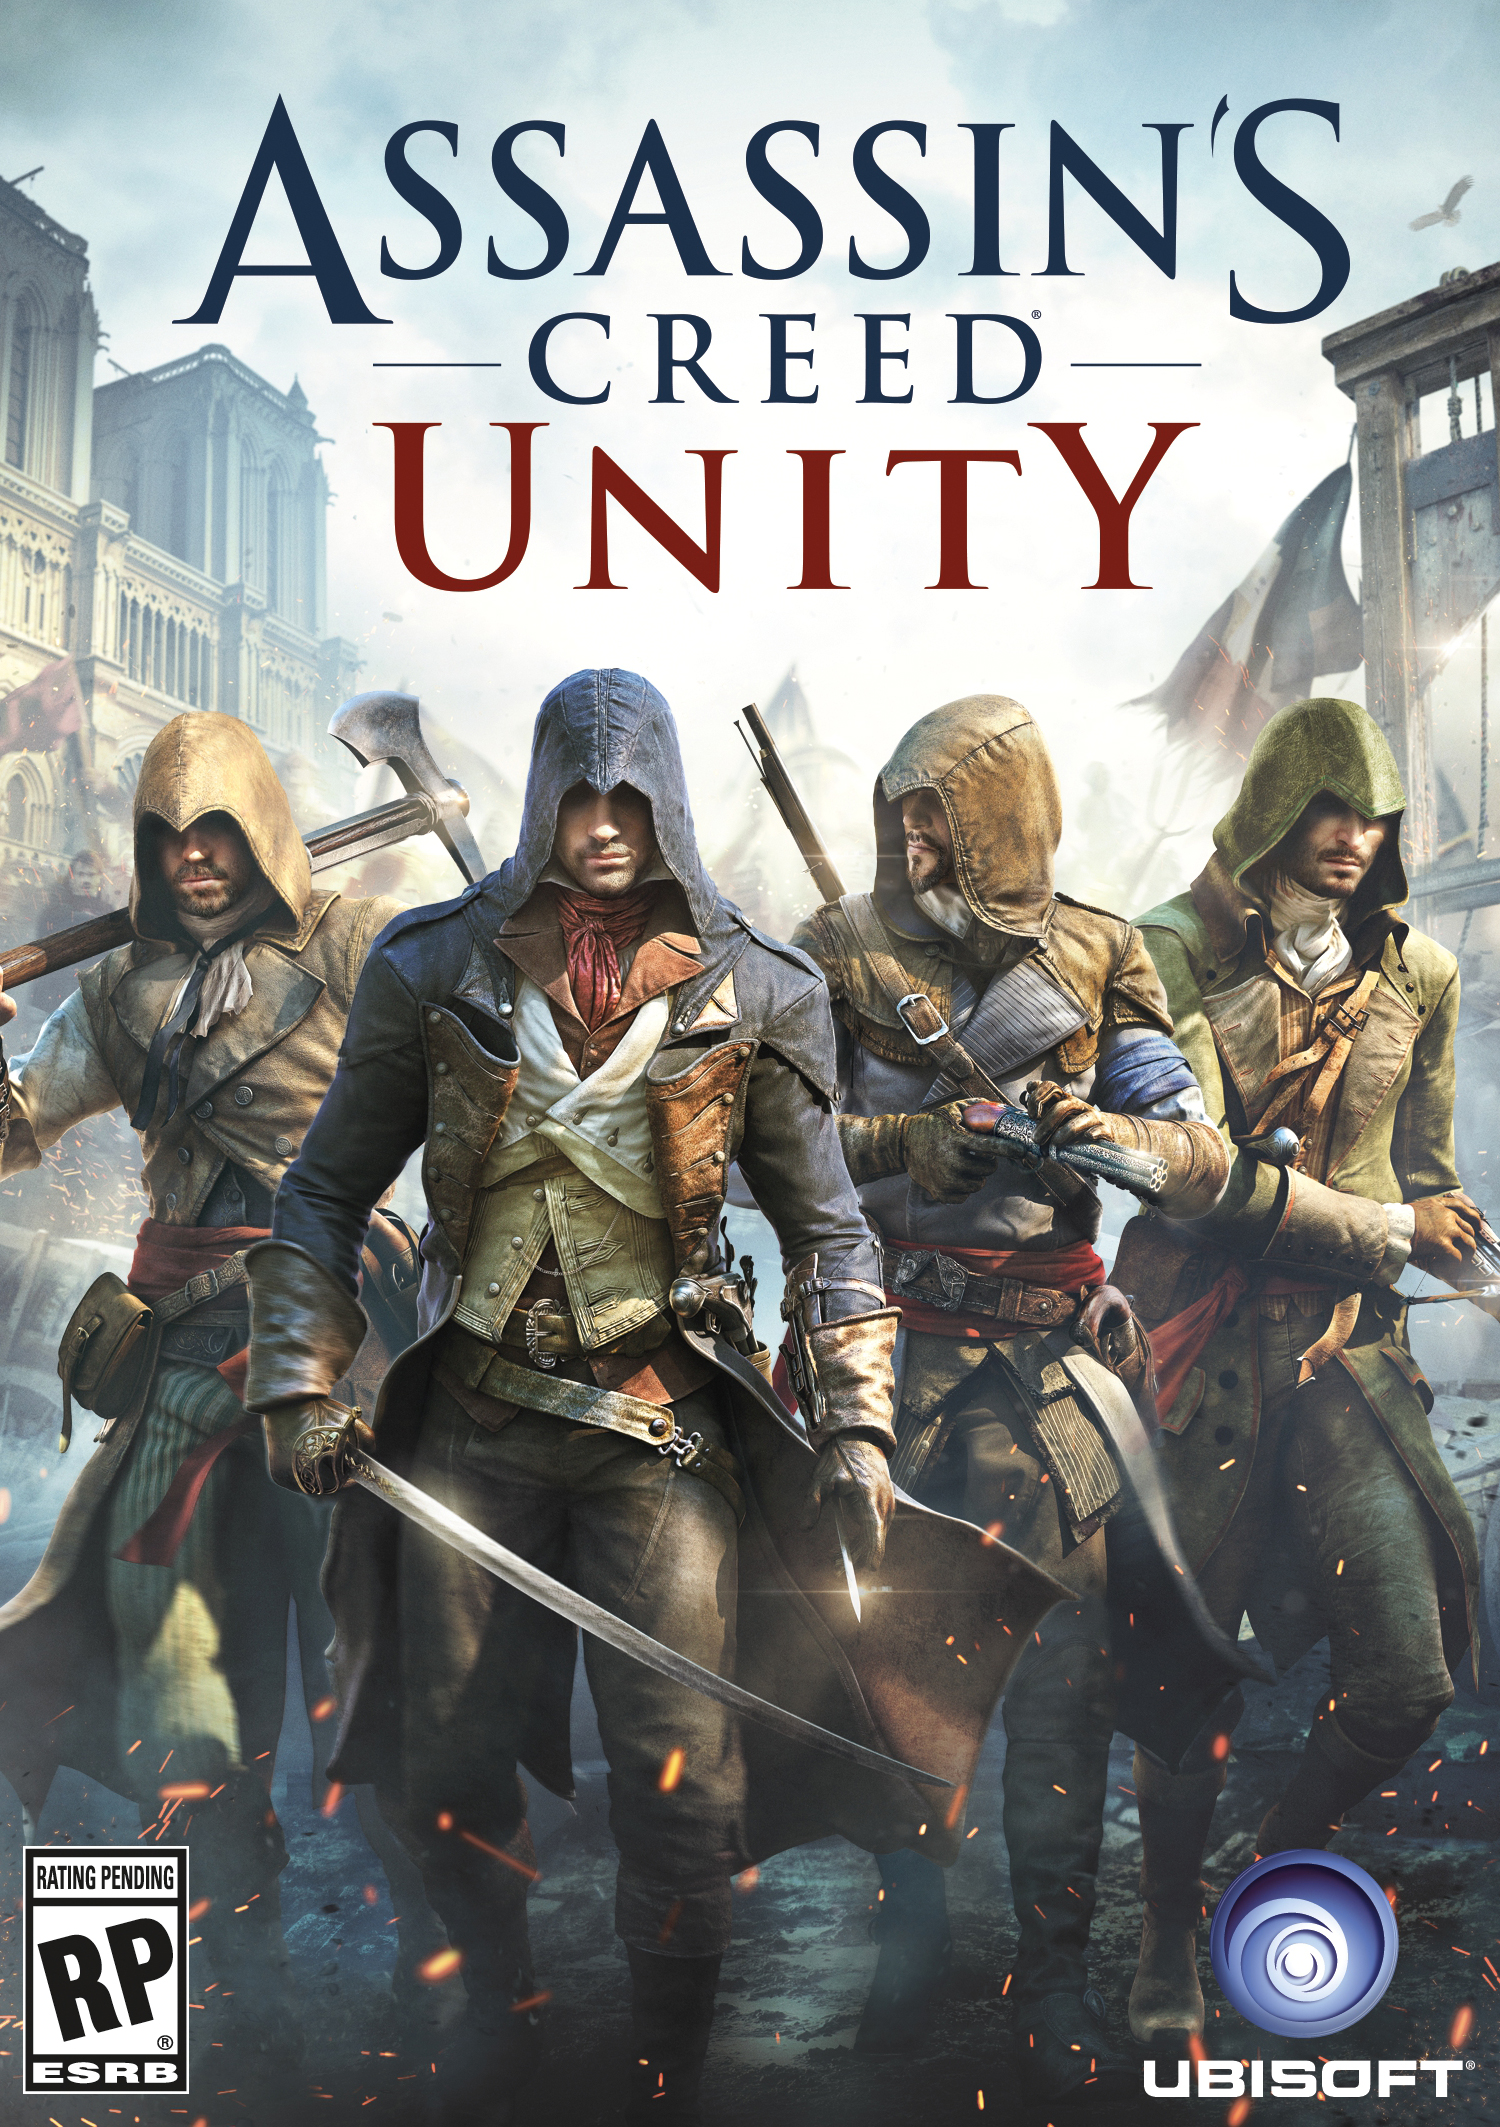 download assassin s creed unity pc free full version game